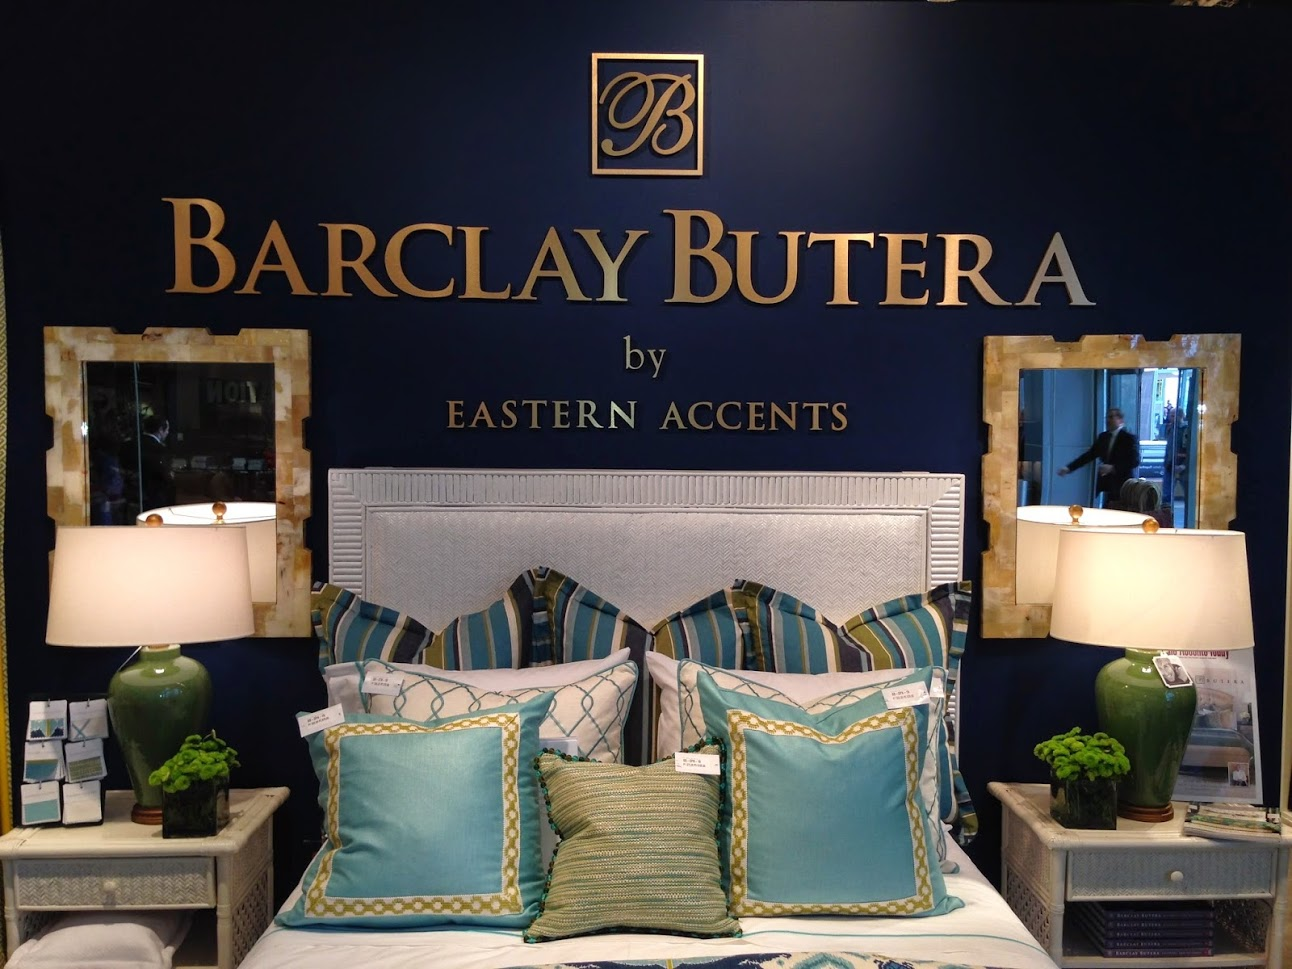 barclay butera dimensional letter wall graphics